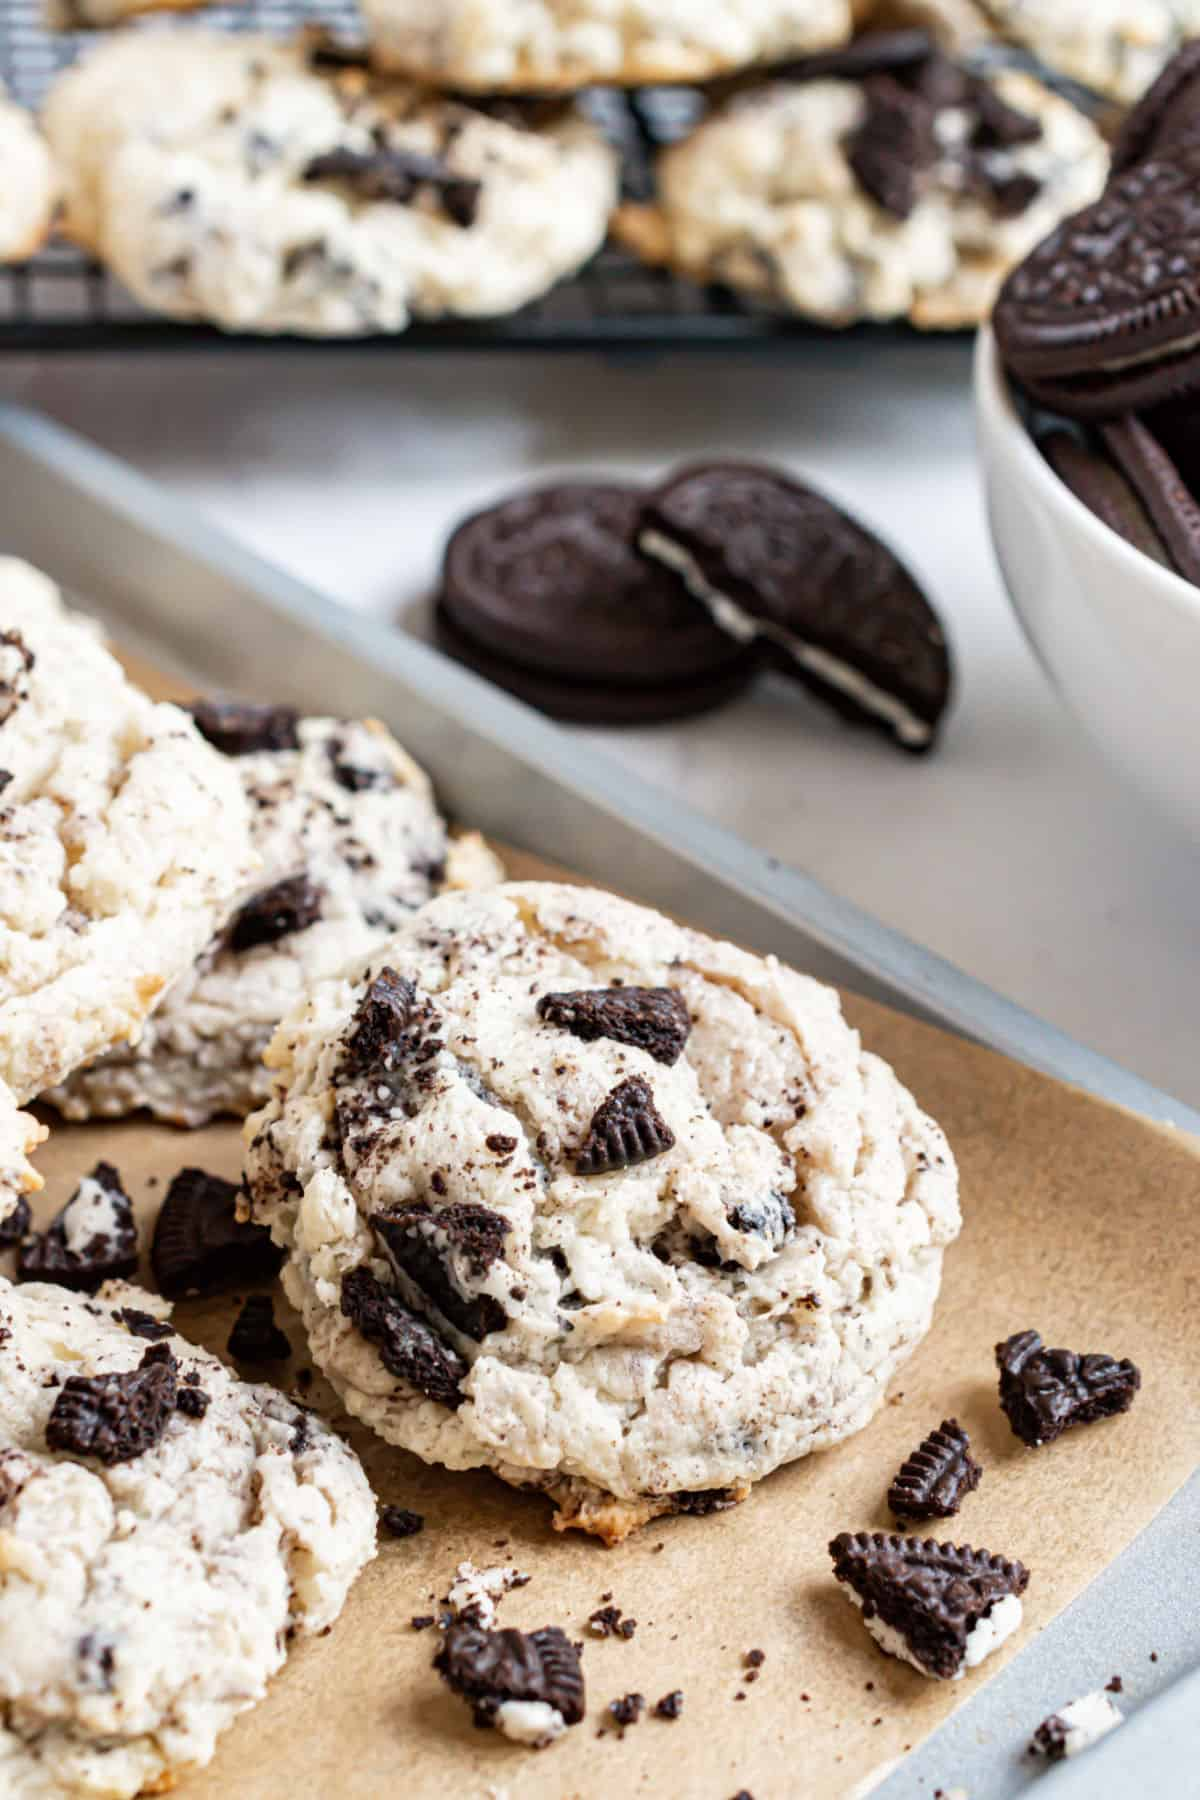 Oreo cookies stacked on parchment paper lined cookie sheet.